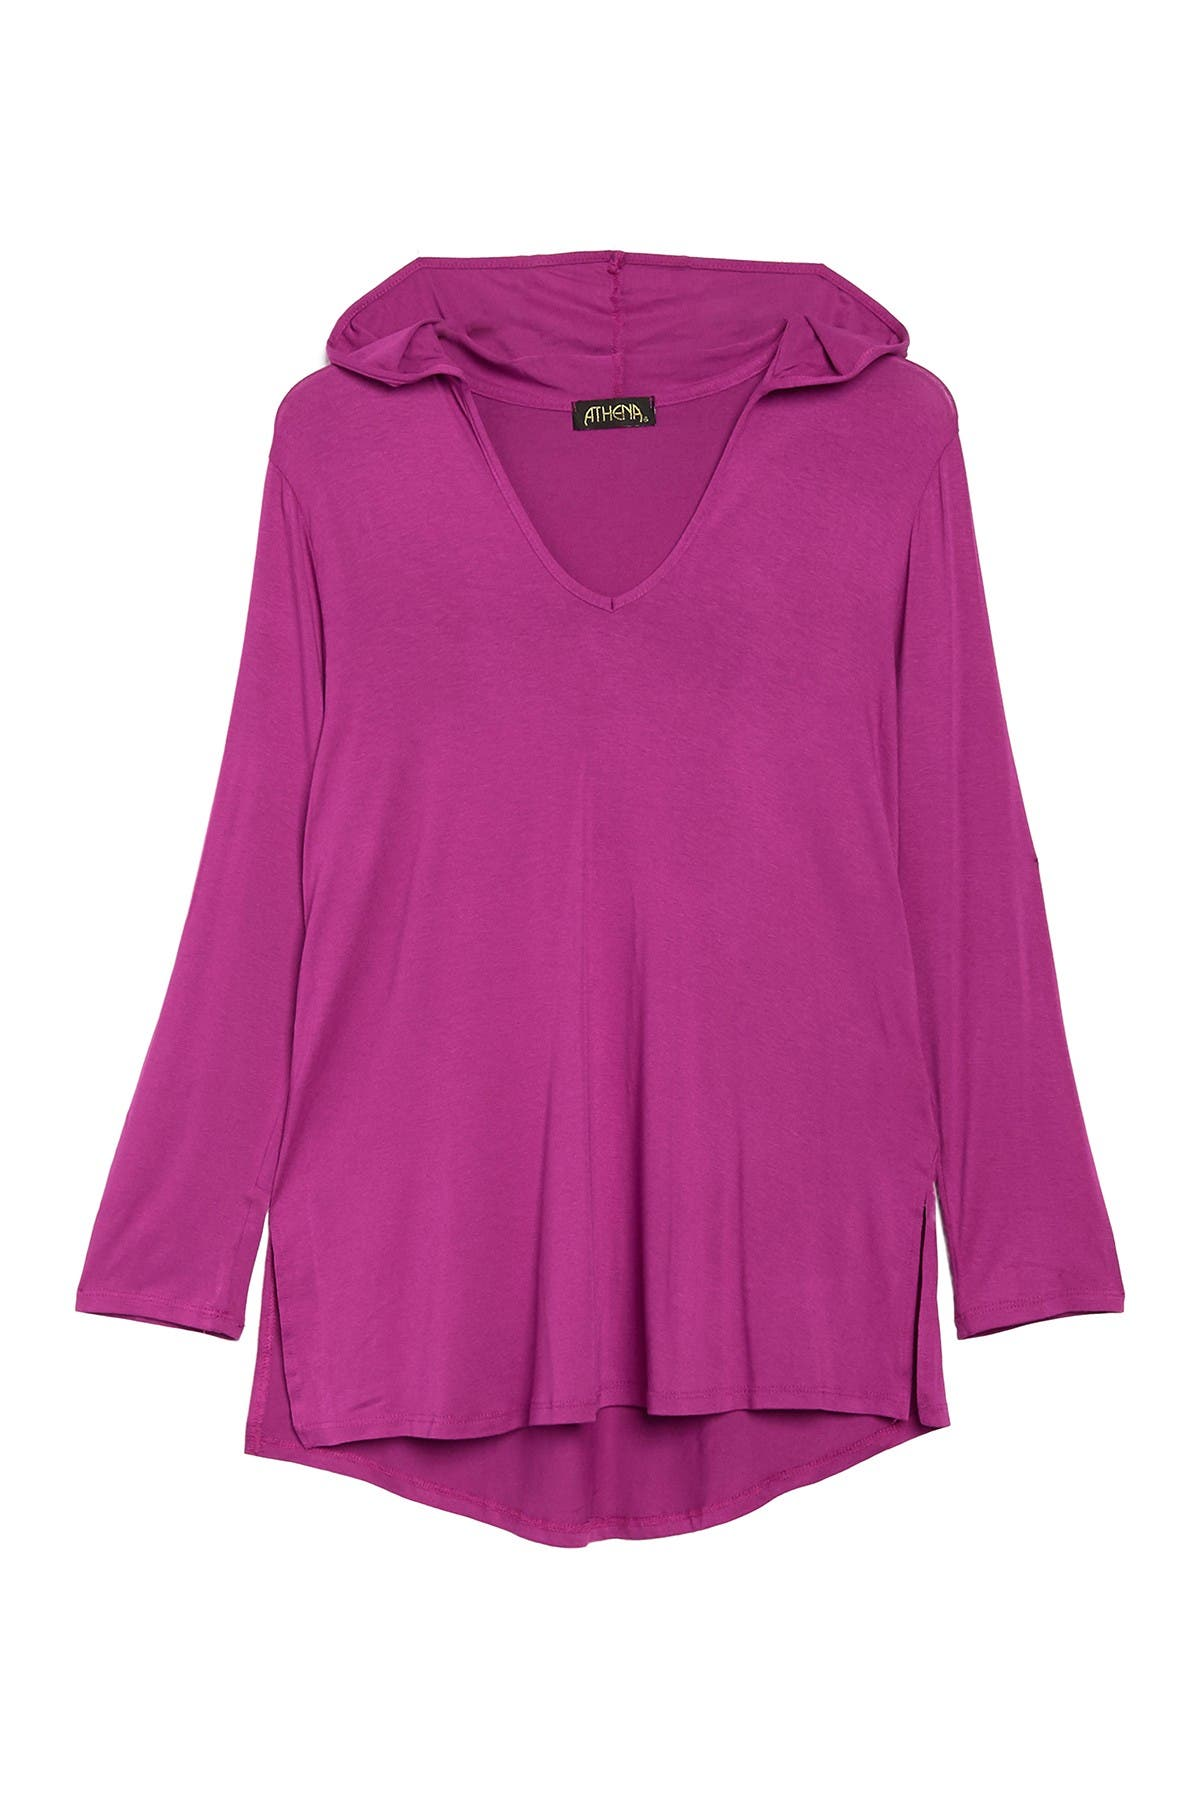 Image of Athena Solid Hooded Cover-Up Tunic